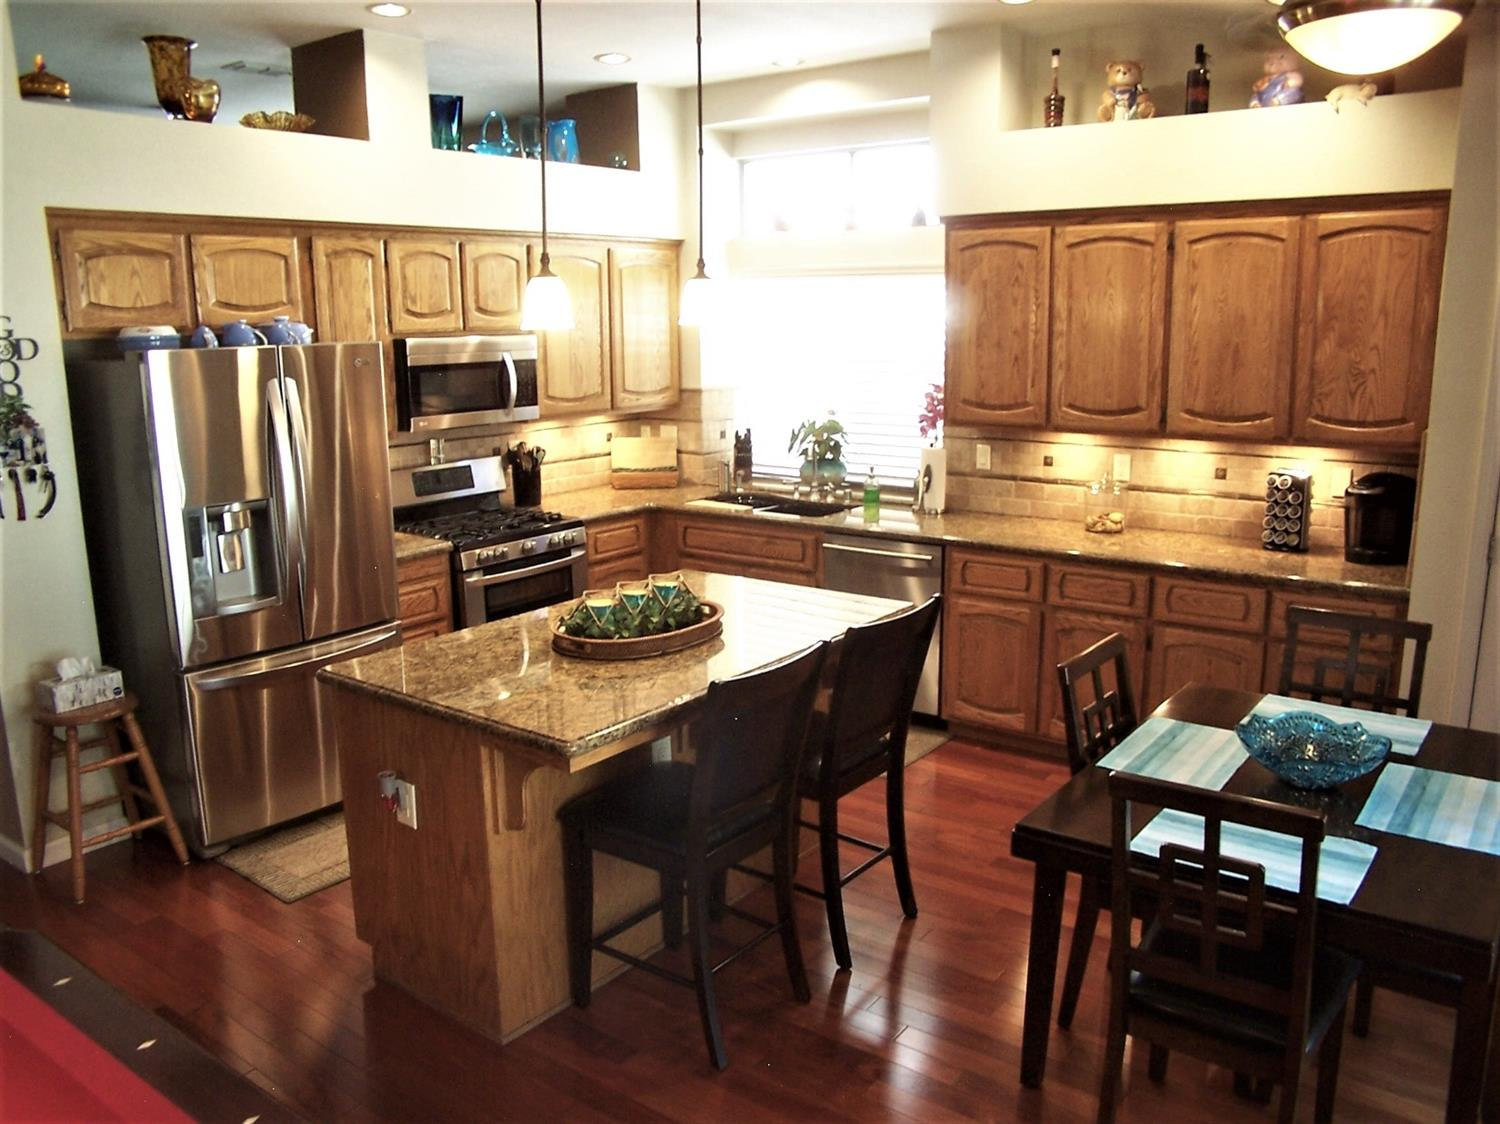 Photo 3 for Listing #221114141